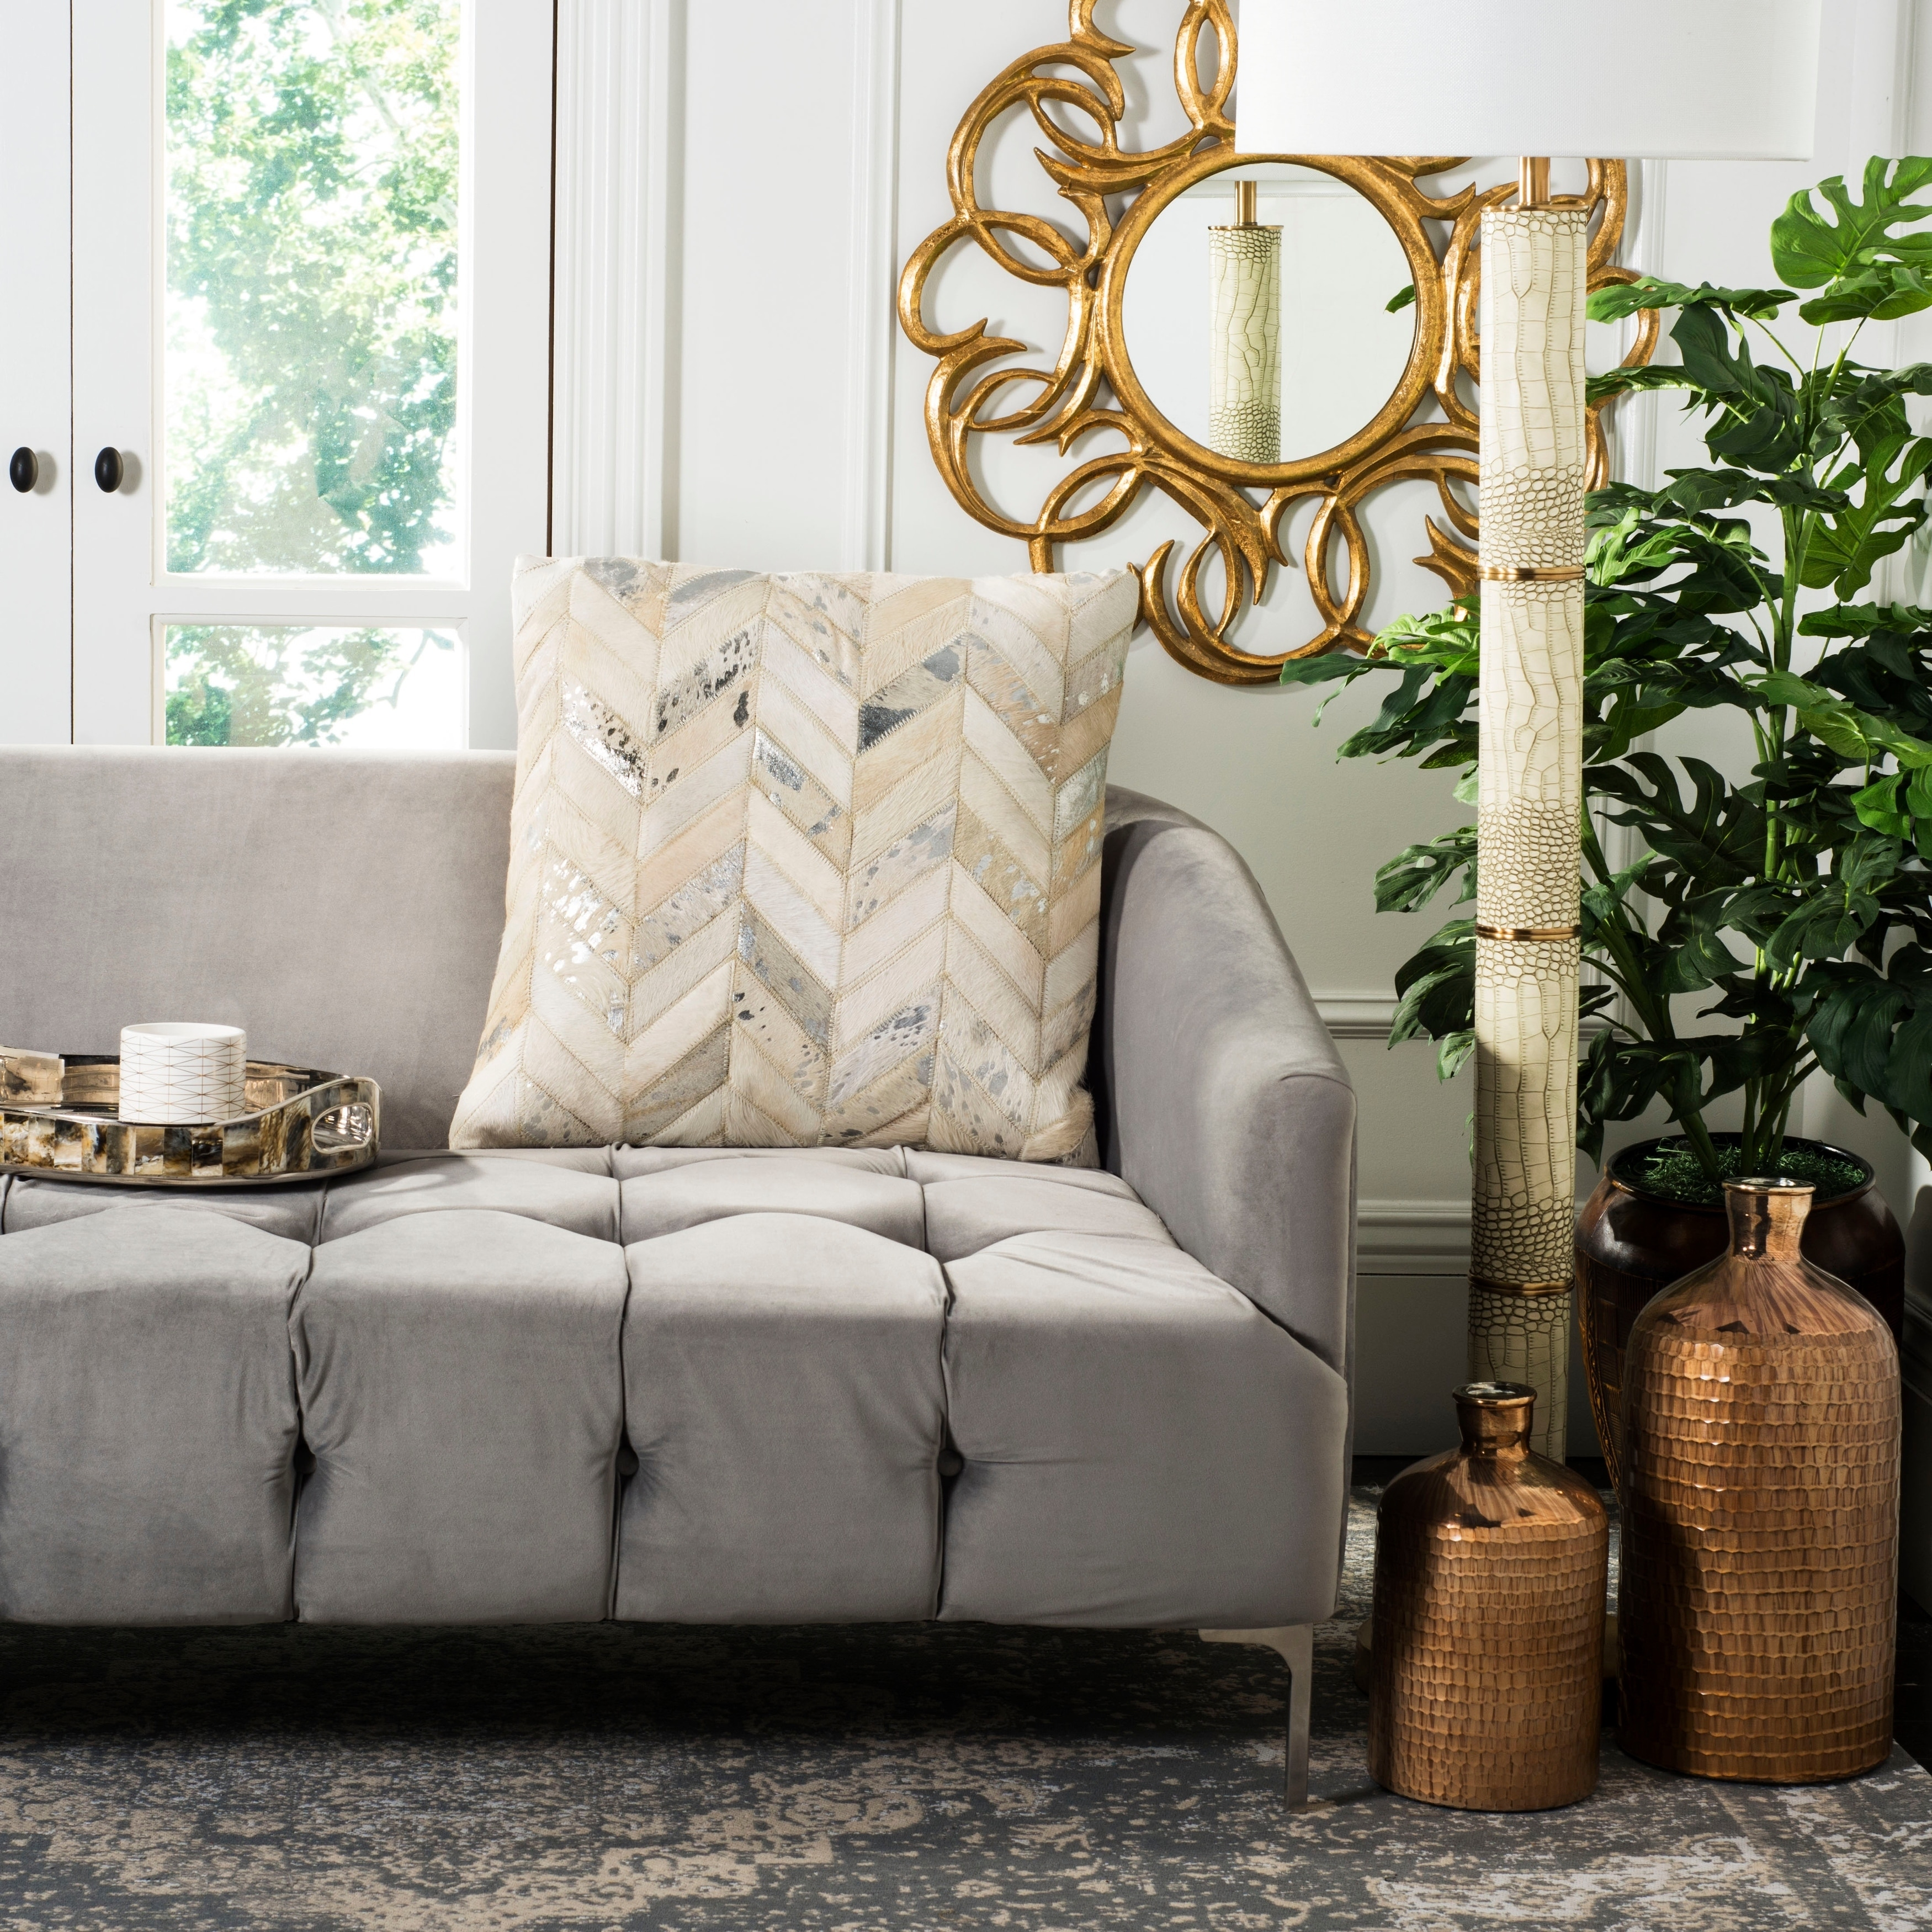 Rectangle Cowhide Cushion Flecked Tan and White Cowhide